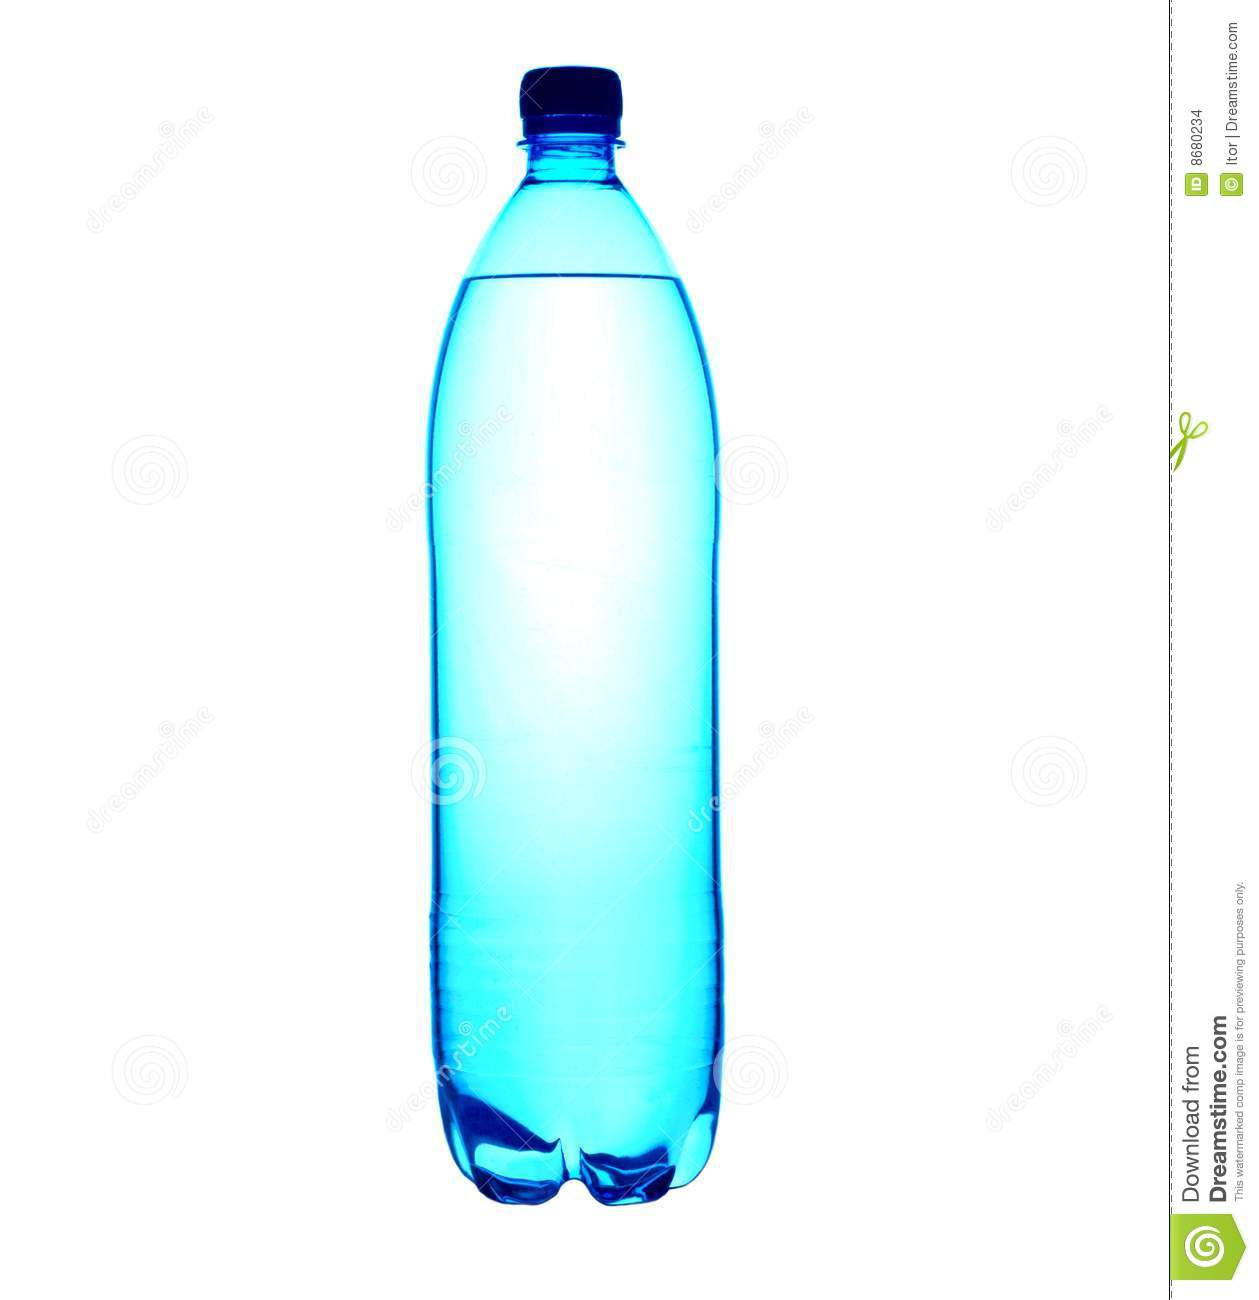 Liter Bottled Water Stock Images - Image: 8680234